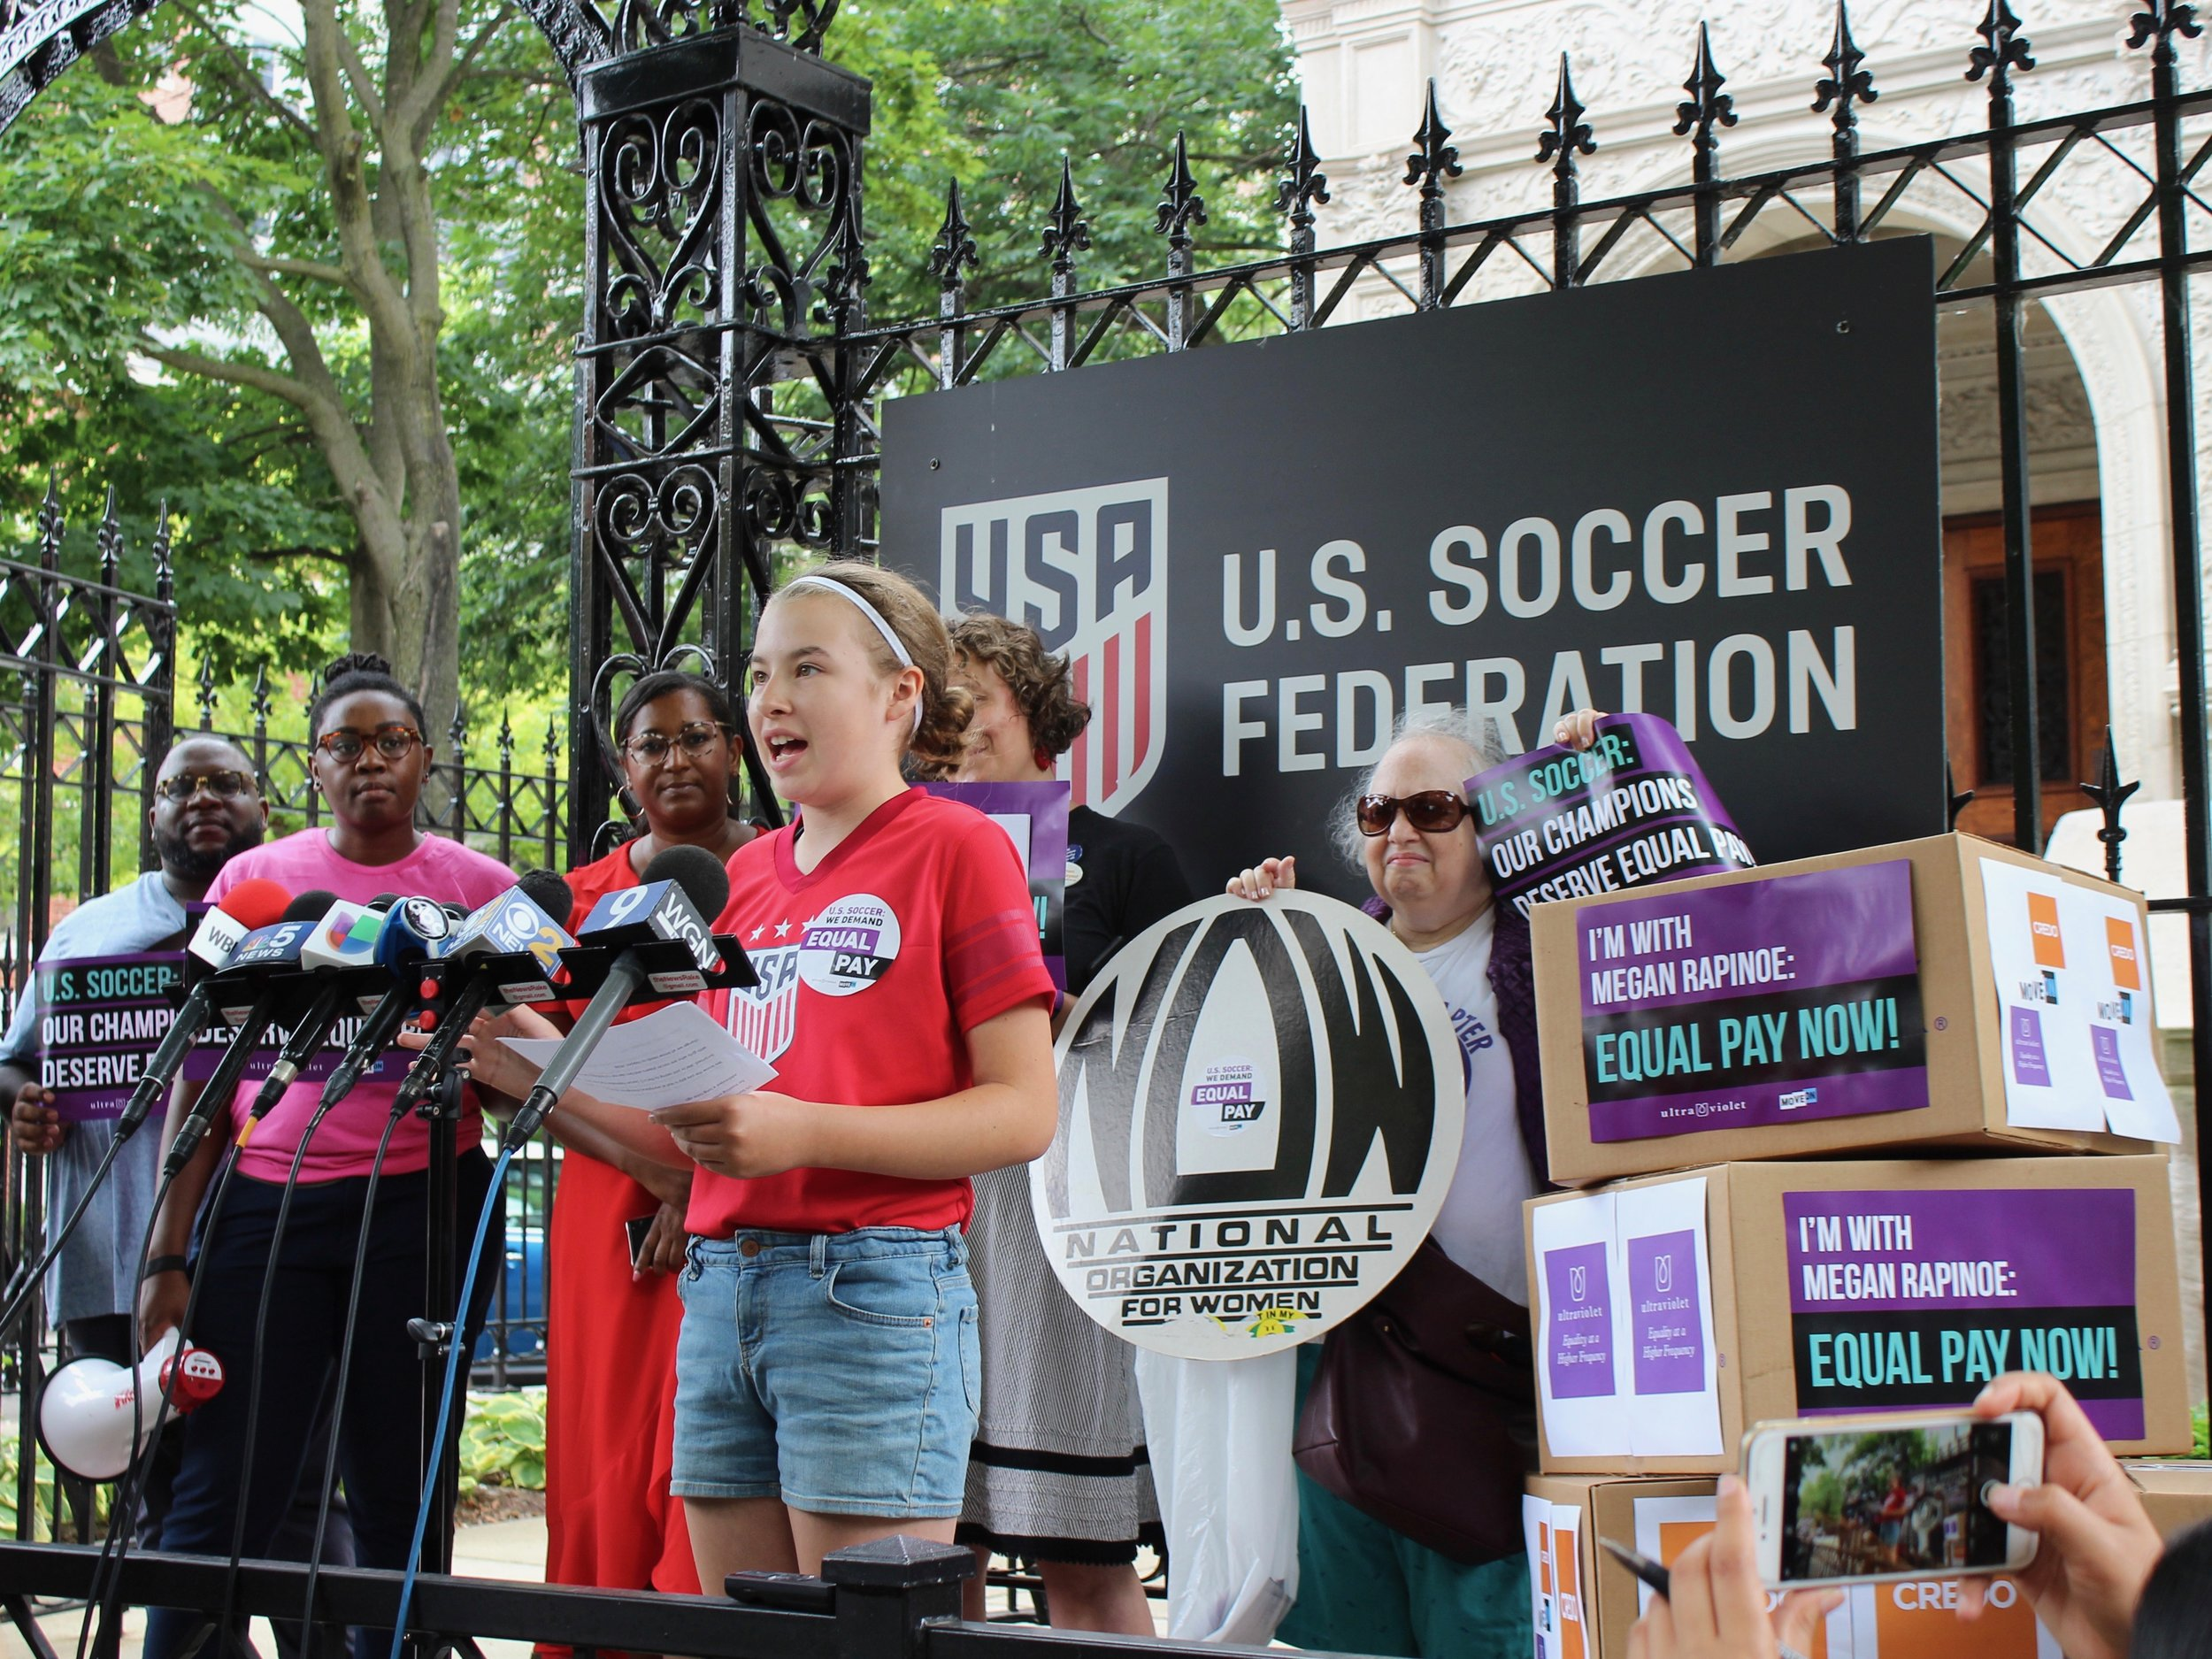 Greta Lindall, a seventh-grade soccer player at Skinner North Classical School in Chicago, speaks out in support of equal pay for the U.S. Women's National Team outside the U.S. Soccer Federation. (One Illinois/Ted Cox)